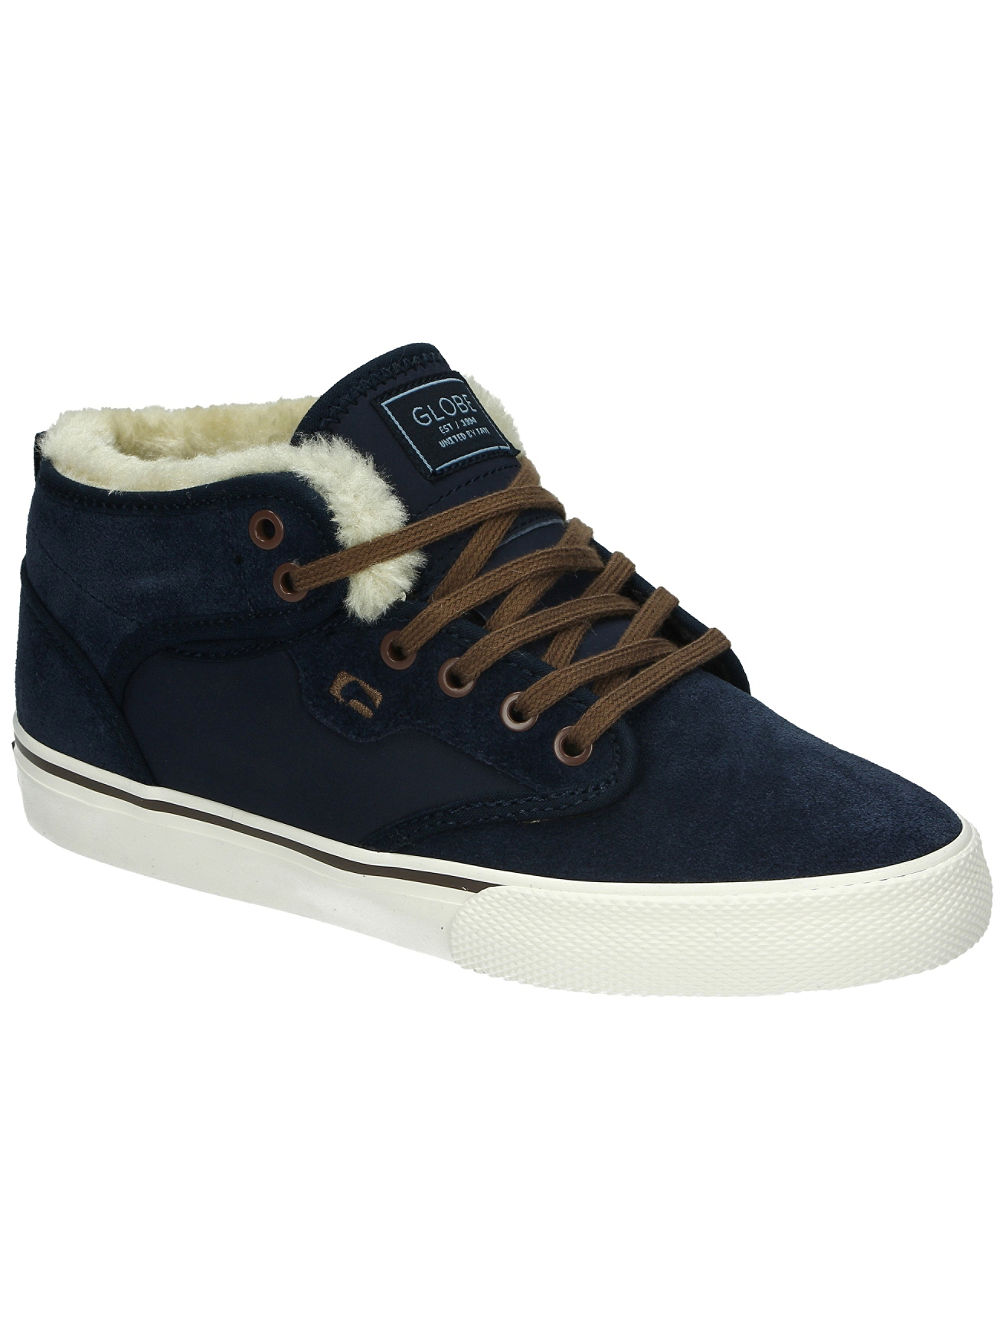 Motley Mid Sneakers Boys